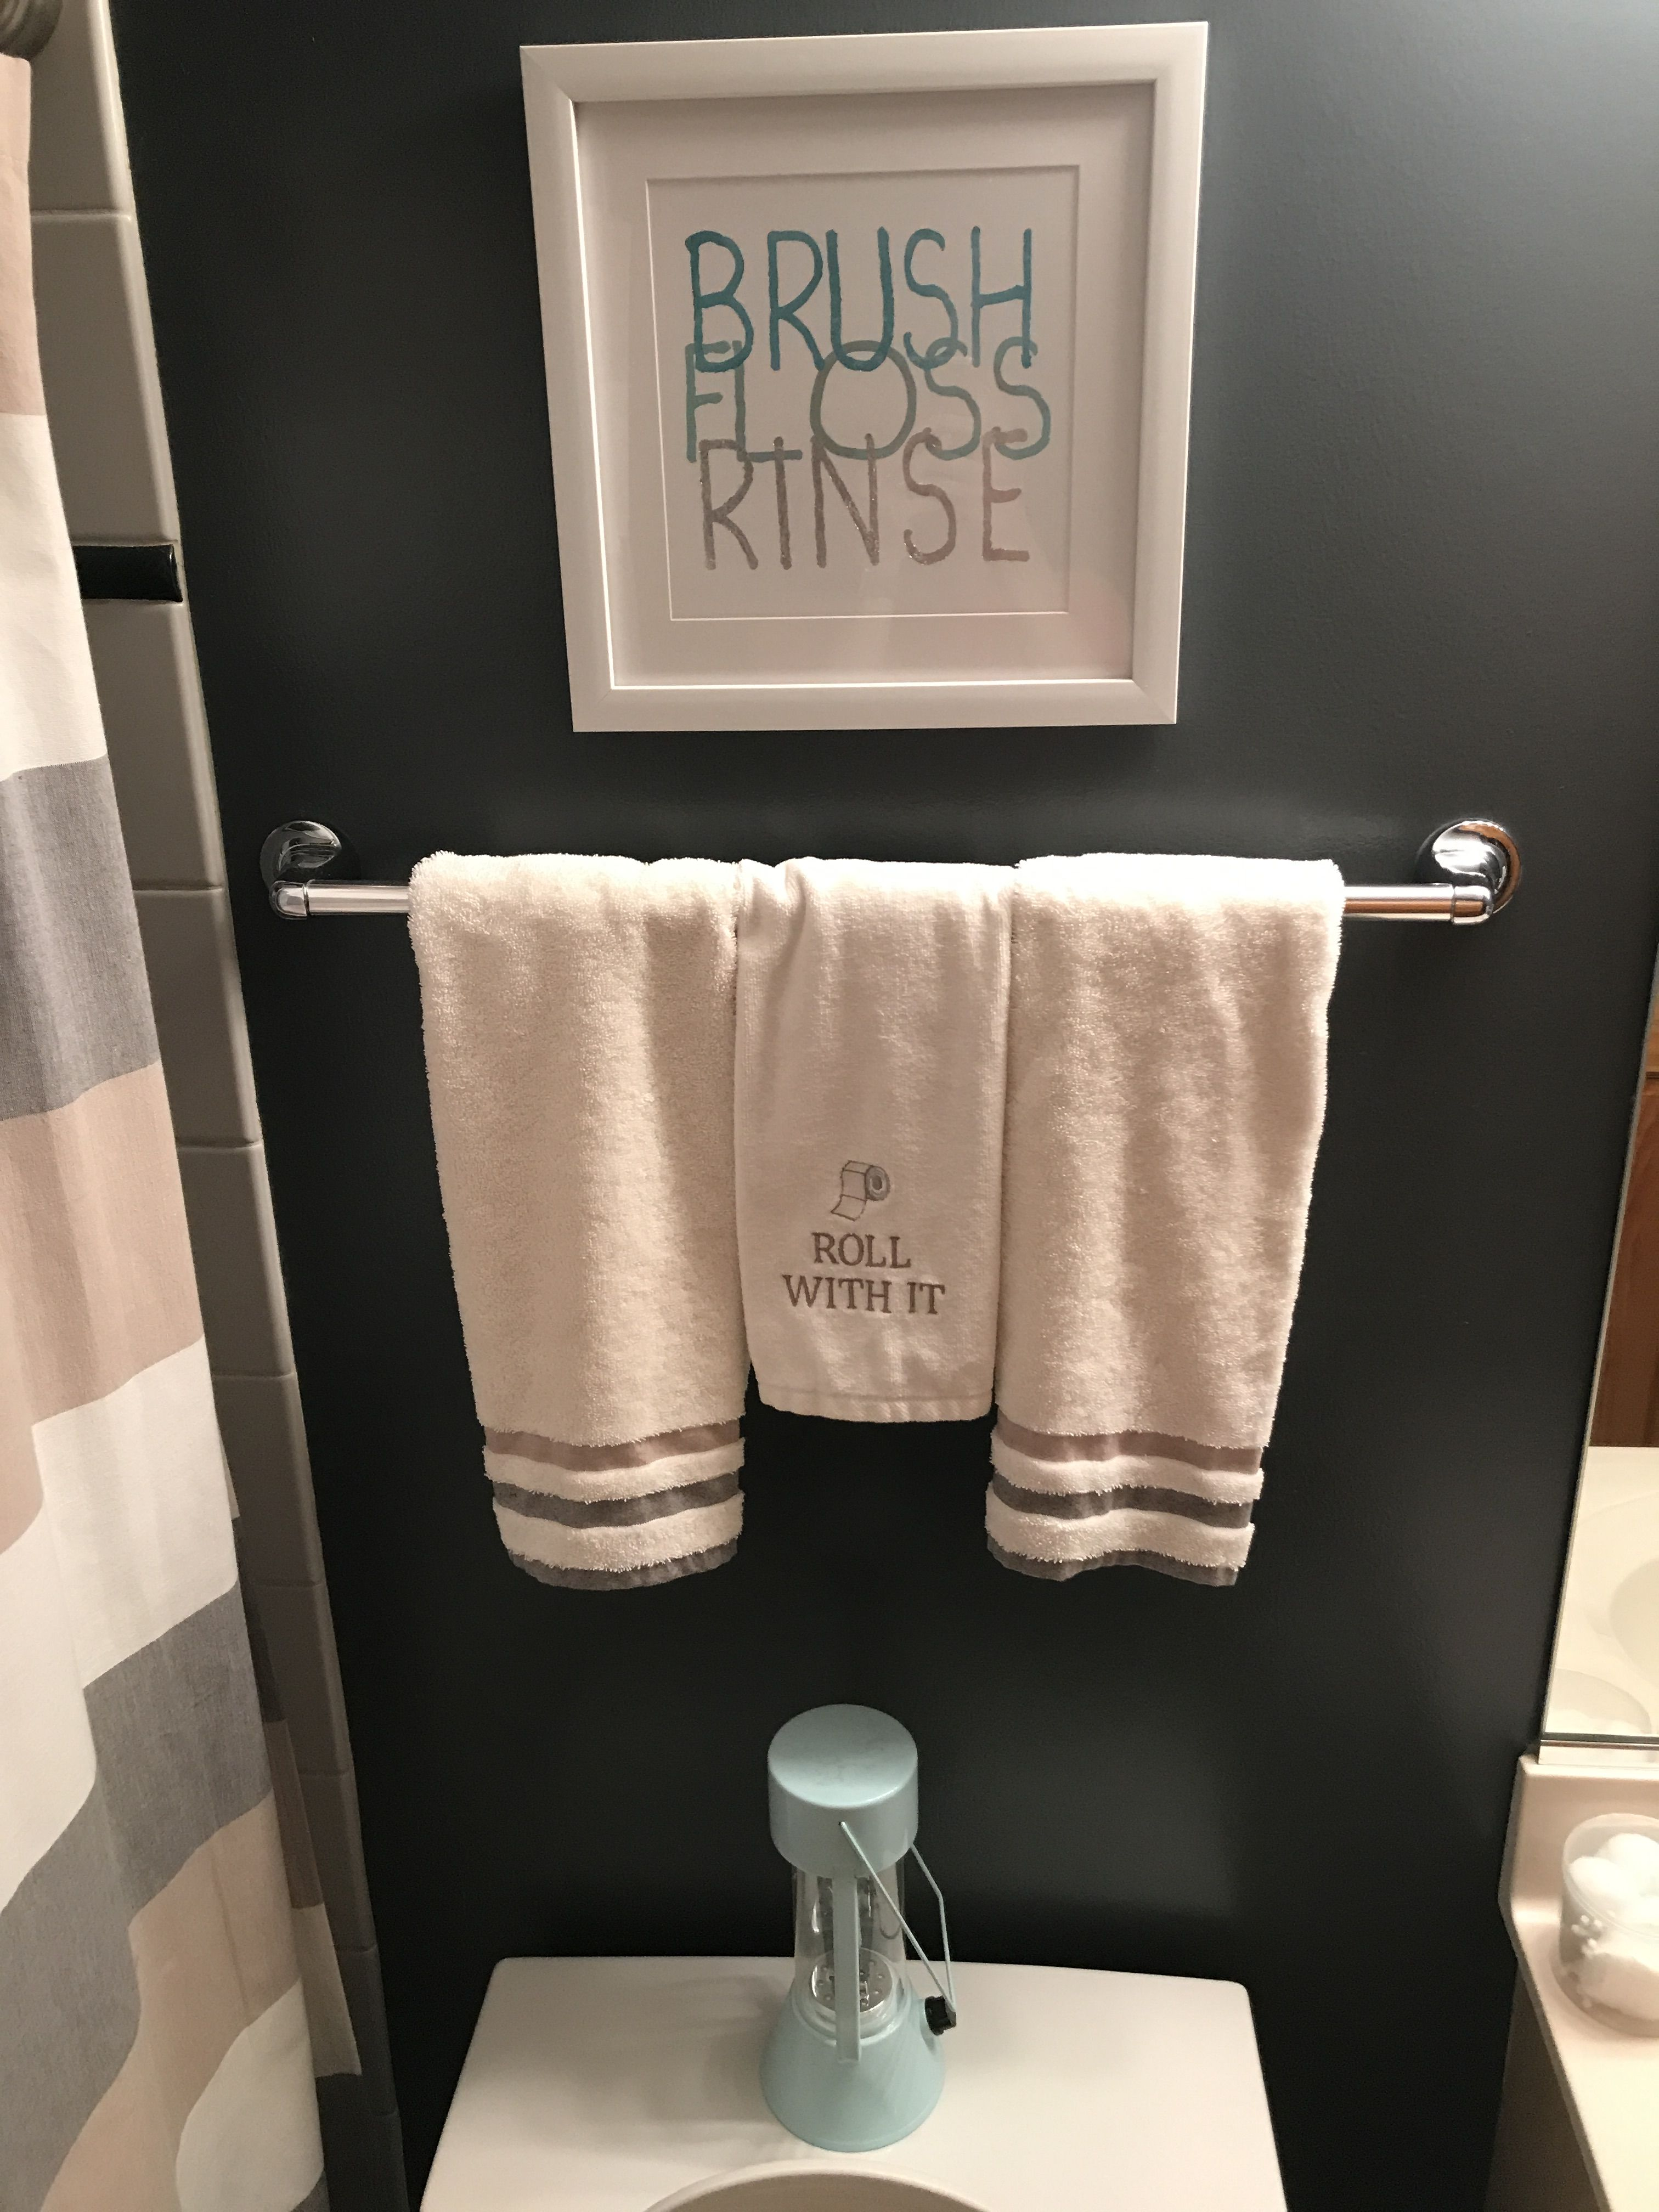 Our Guest Bathroom Sign Hobby Lobby Towels And Shower Curtain Dillards Bed Bath Beyond Lantern IKEA